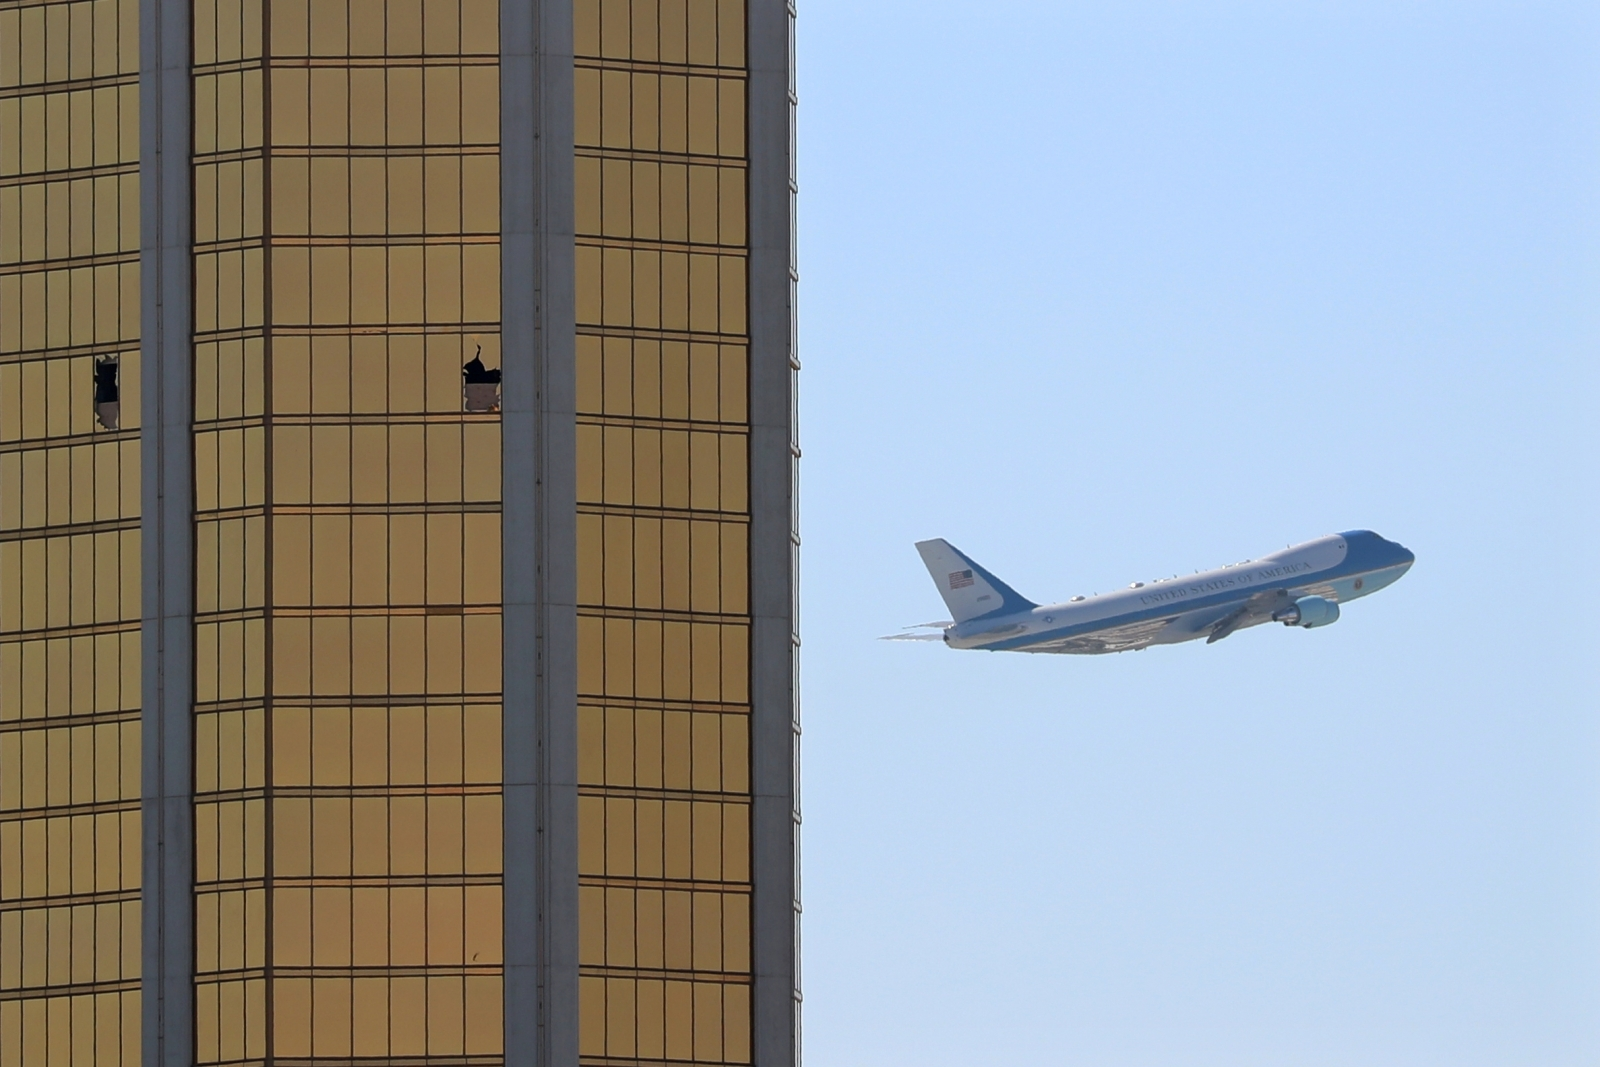 Disturbing photo shows Trump's plane flying past broken ... Stephen Paddock